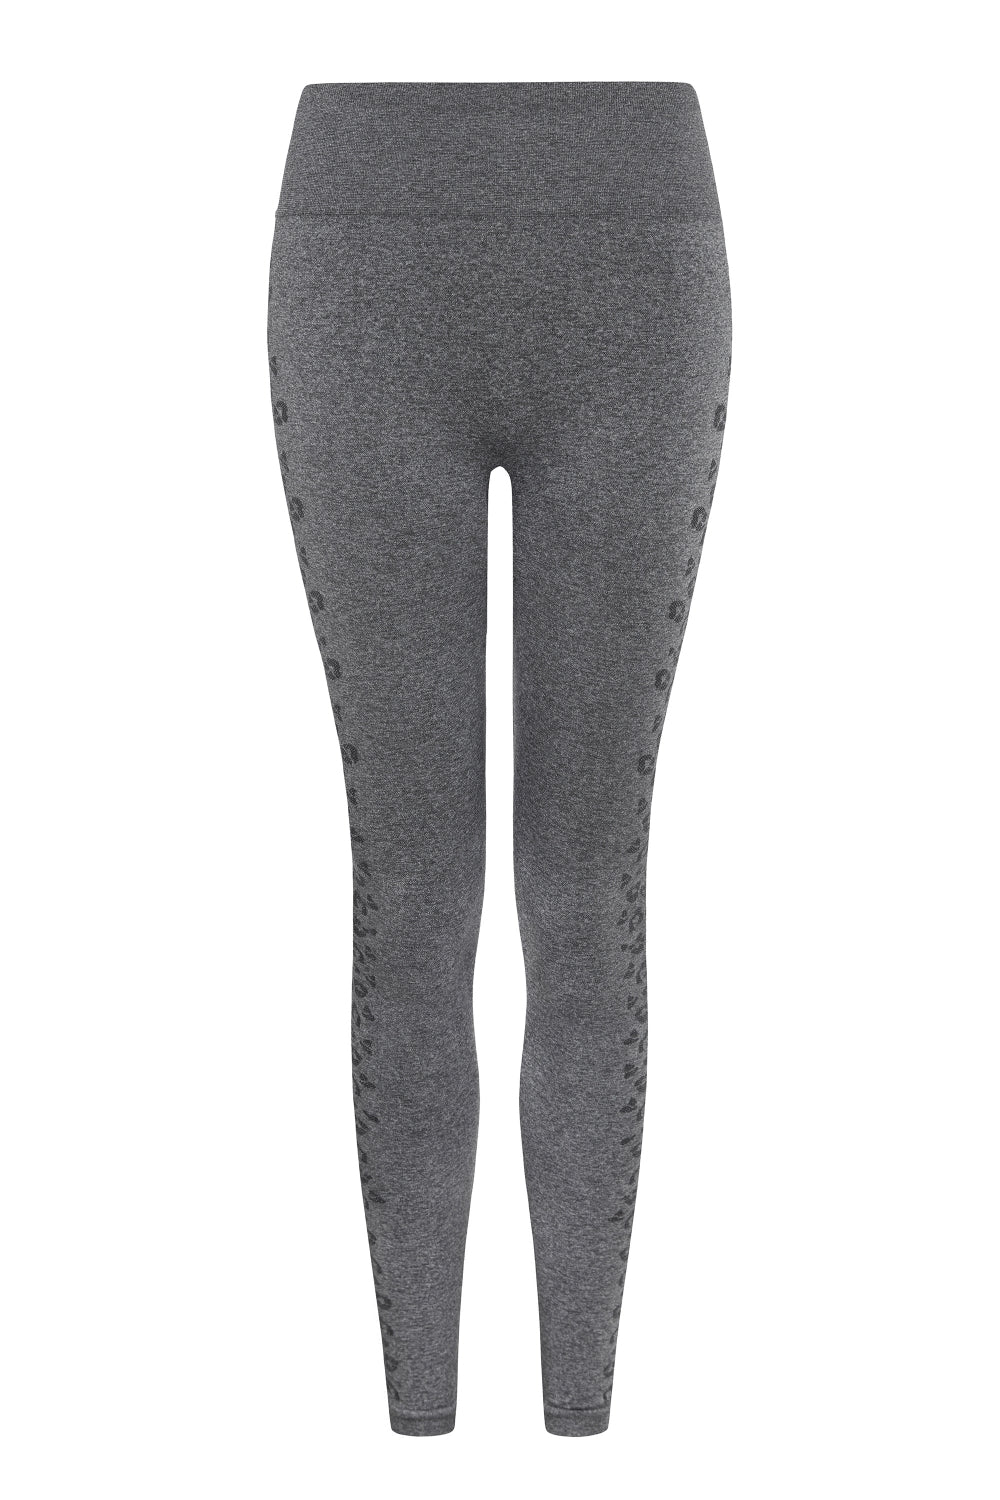 Wild Thing Leggings - Grey Marl